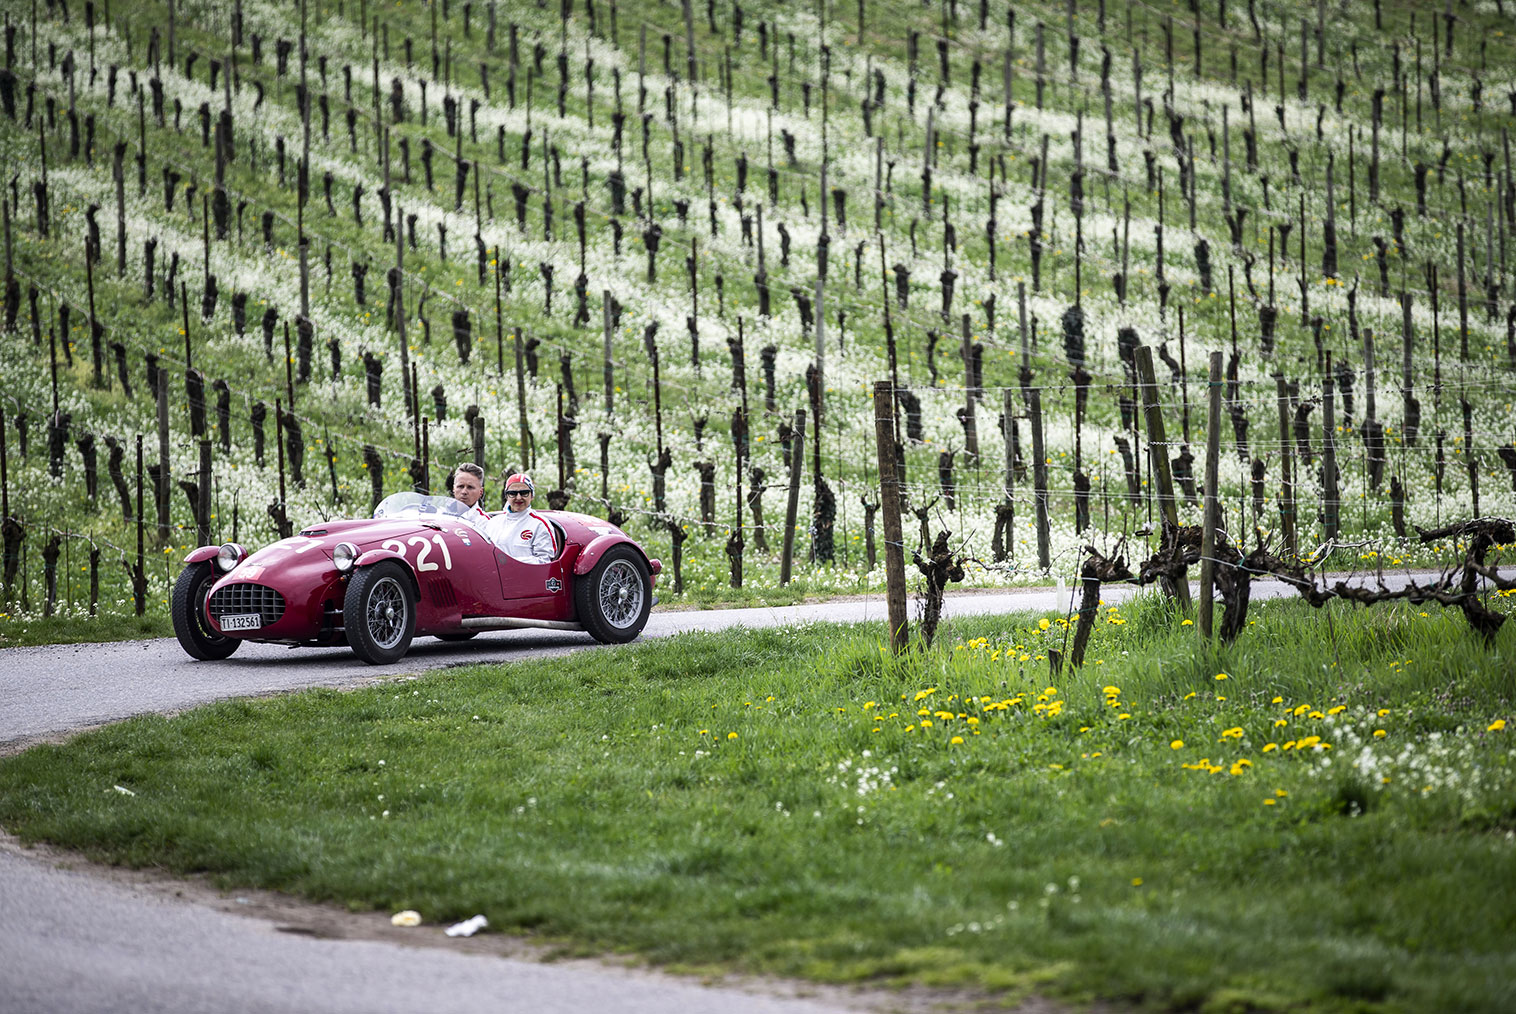 Saturday 6 April 2019 the new edition of Franciacorta Historic